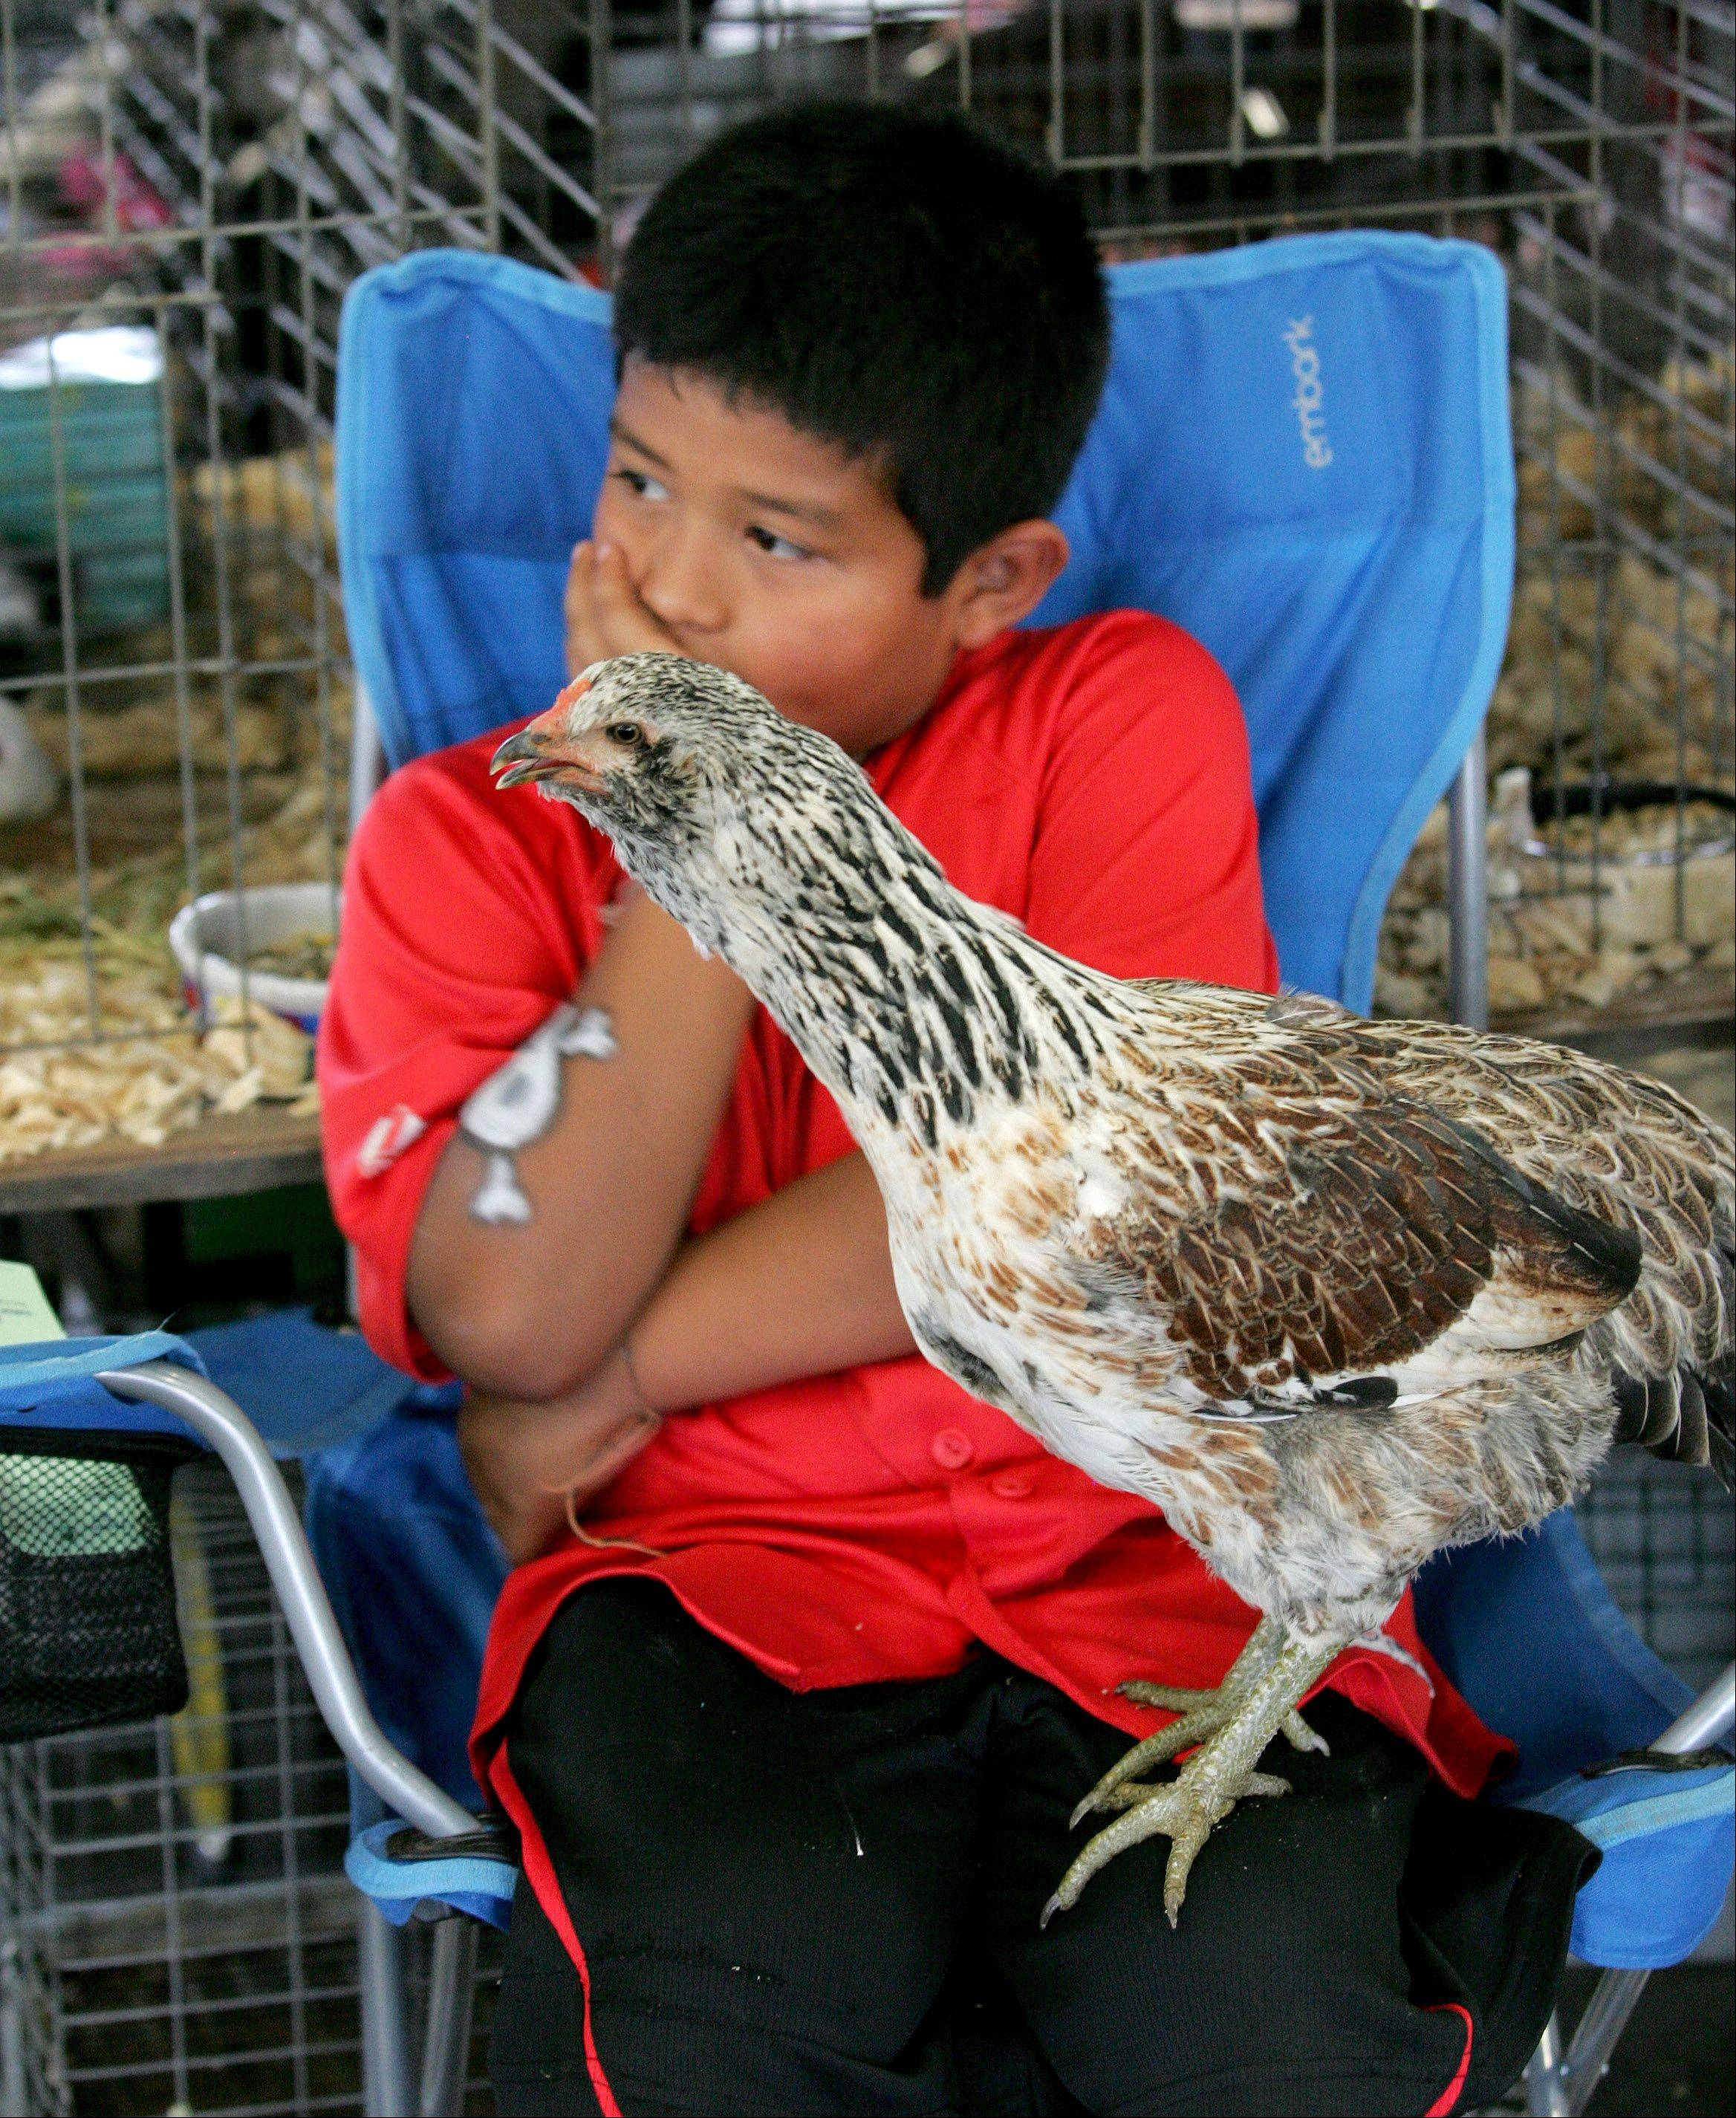 Rony Borowiak, 8 of Warrenville and his pullet named Temig, wait patiently to be judged during the opening day of the DuPage County Fair in Wheaton on Wednesday.